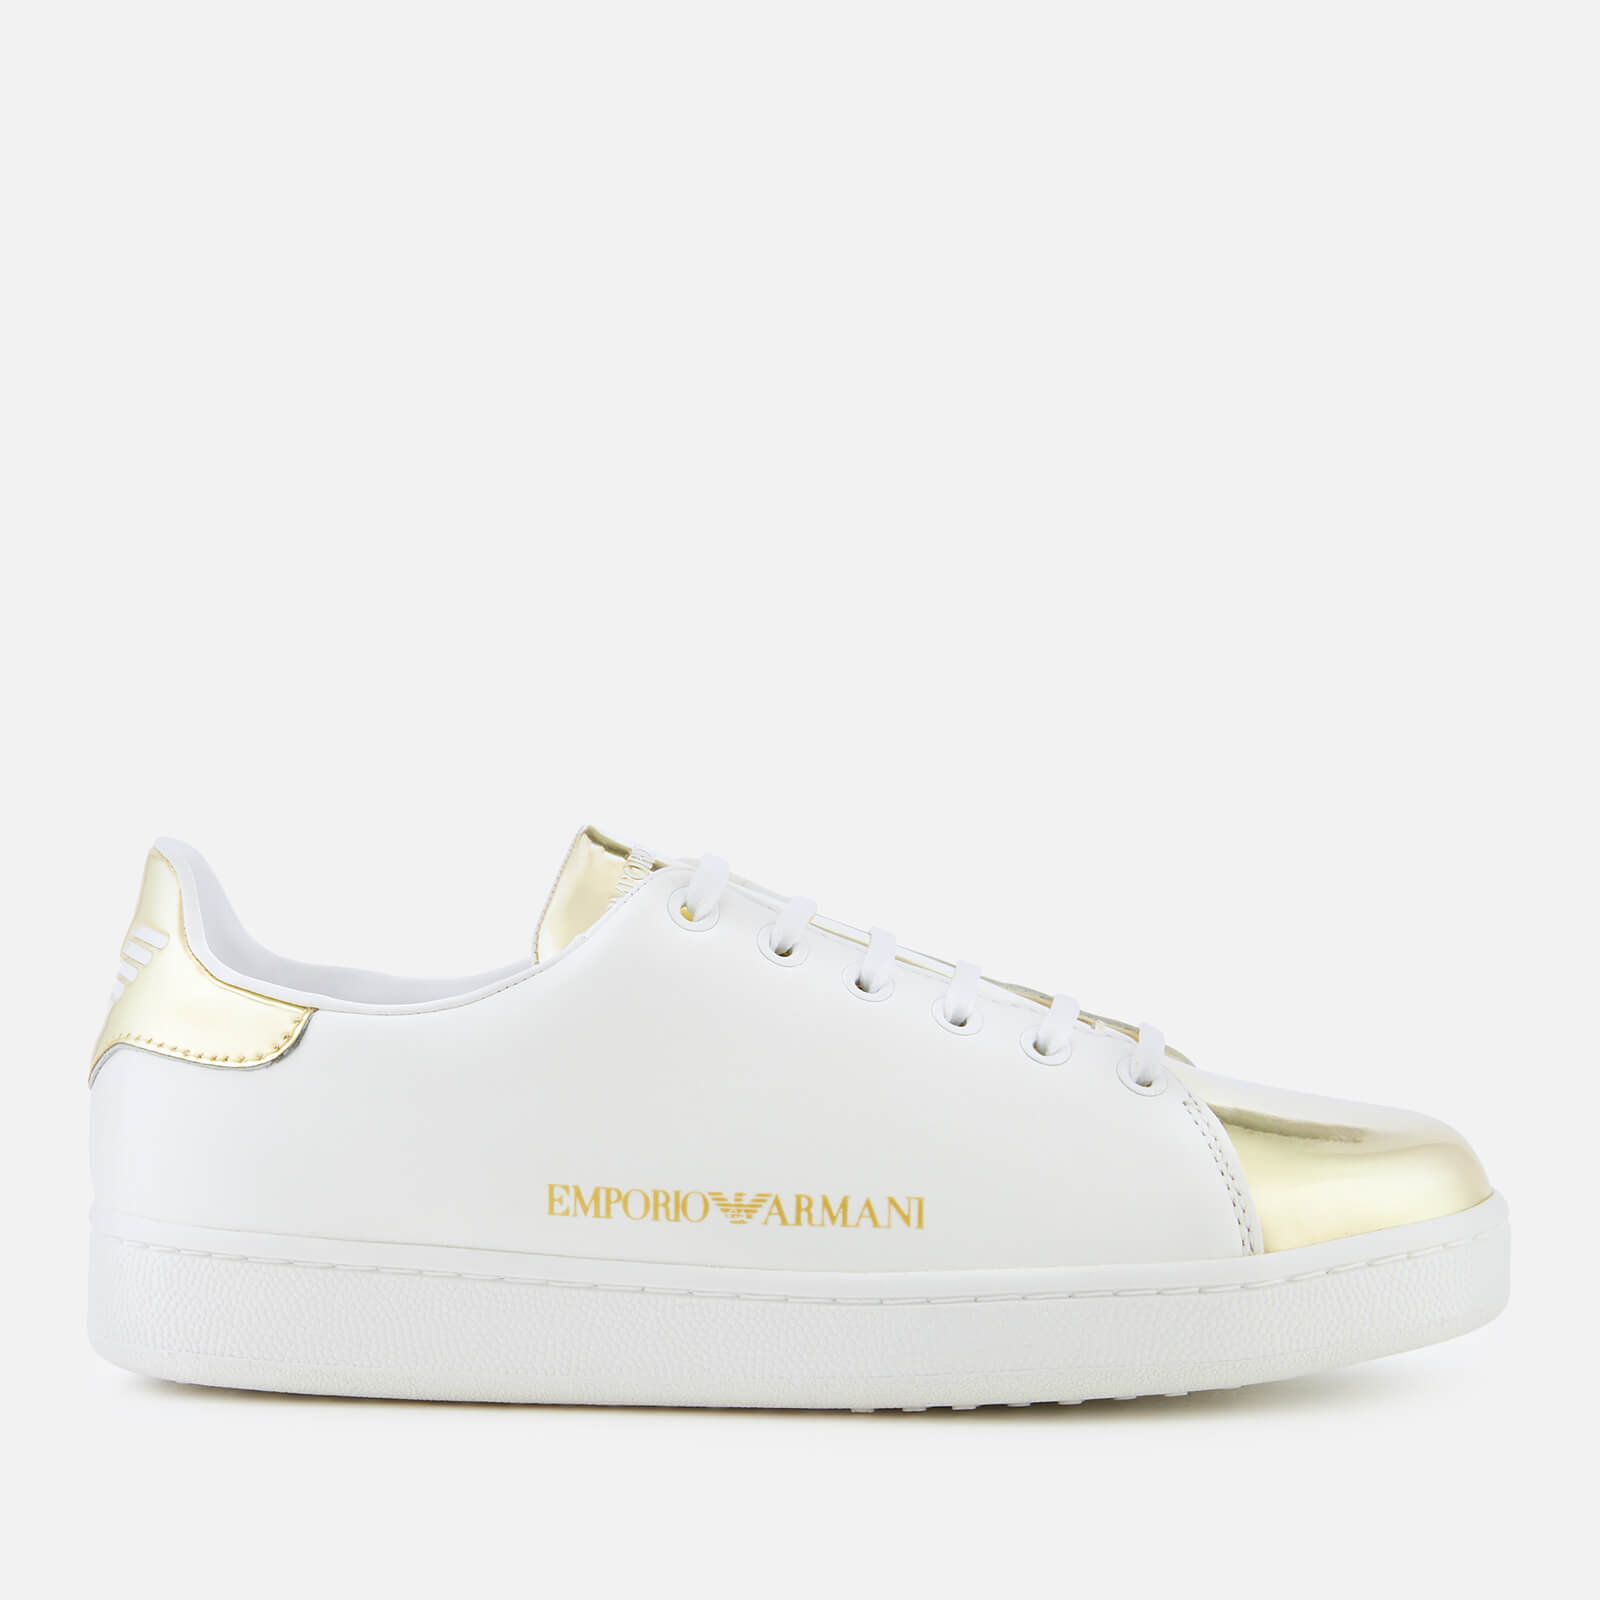 a32b57e2 Emporio Armani Women's Serena Leather Low Top Trainers - White/Gold